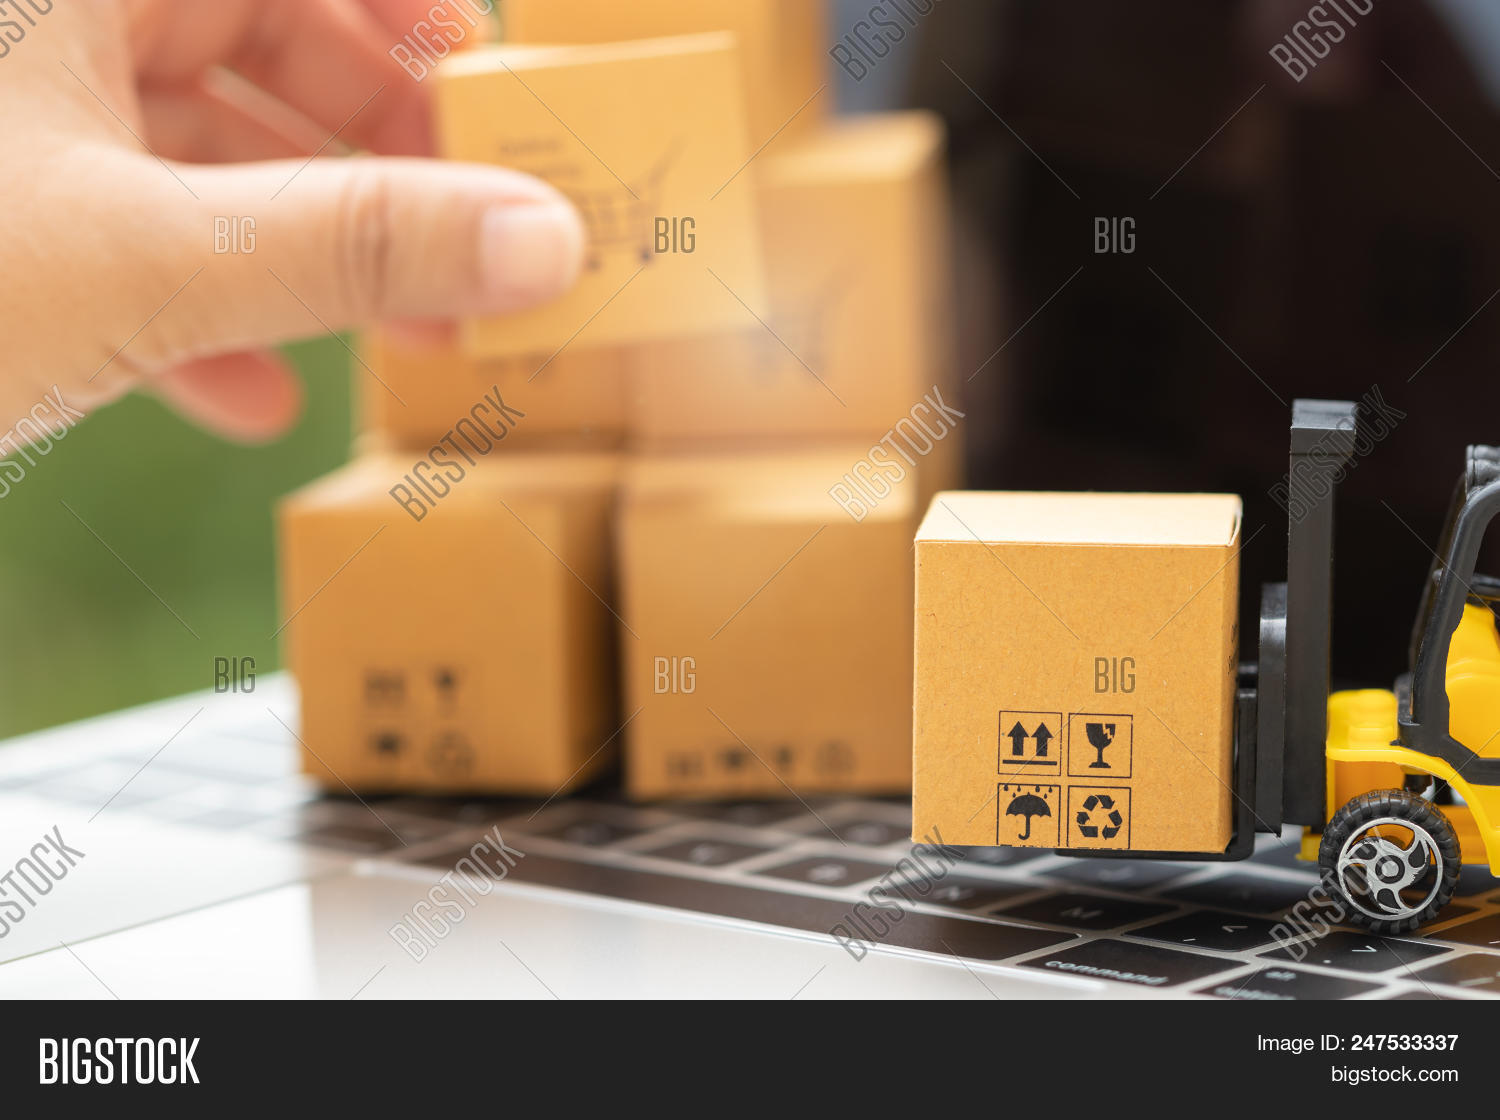 🔥 Mini Forklift Truck Load Cardboard Box And Hand Holding